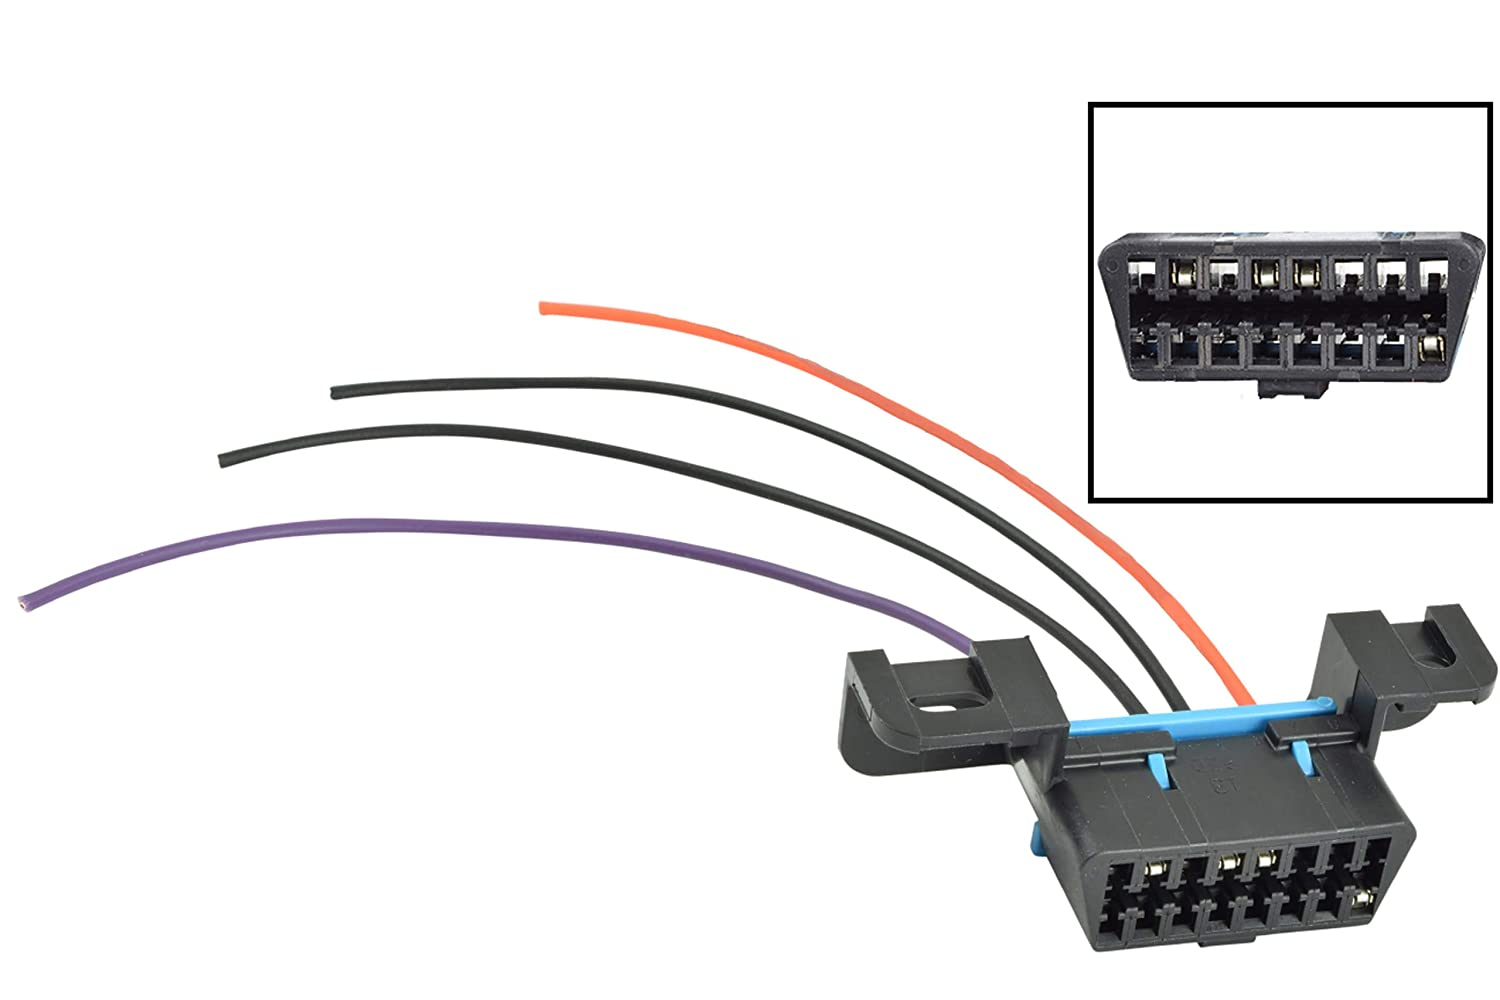 ICT Billet GM LS OBD2 Dash Diagnostic Port 4-Wire Harness Connector on wire nut, wire cap, wire antenna, wire leads, wire sleeve, wire lamp, wire clothing, wire connector, wire holder, wire ball,